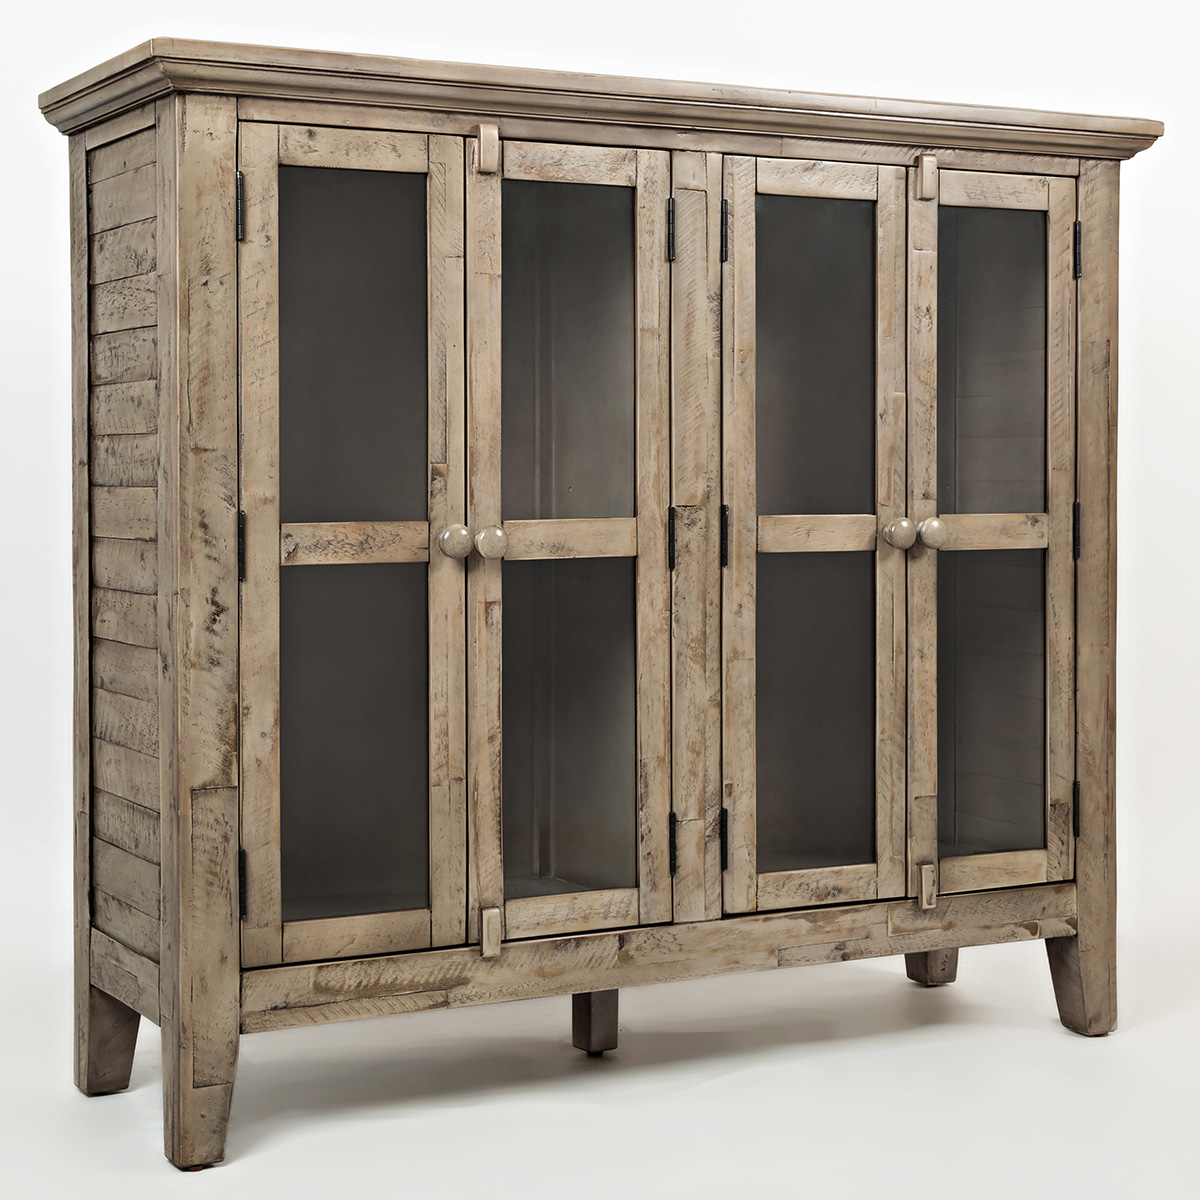 Accent cabinet with glass doors - Rustic Shores Watch Hill 48 Accent Cabinet In Distressed Weathered Grey W Glass Doors